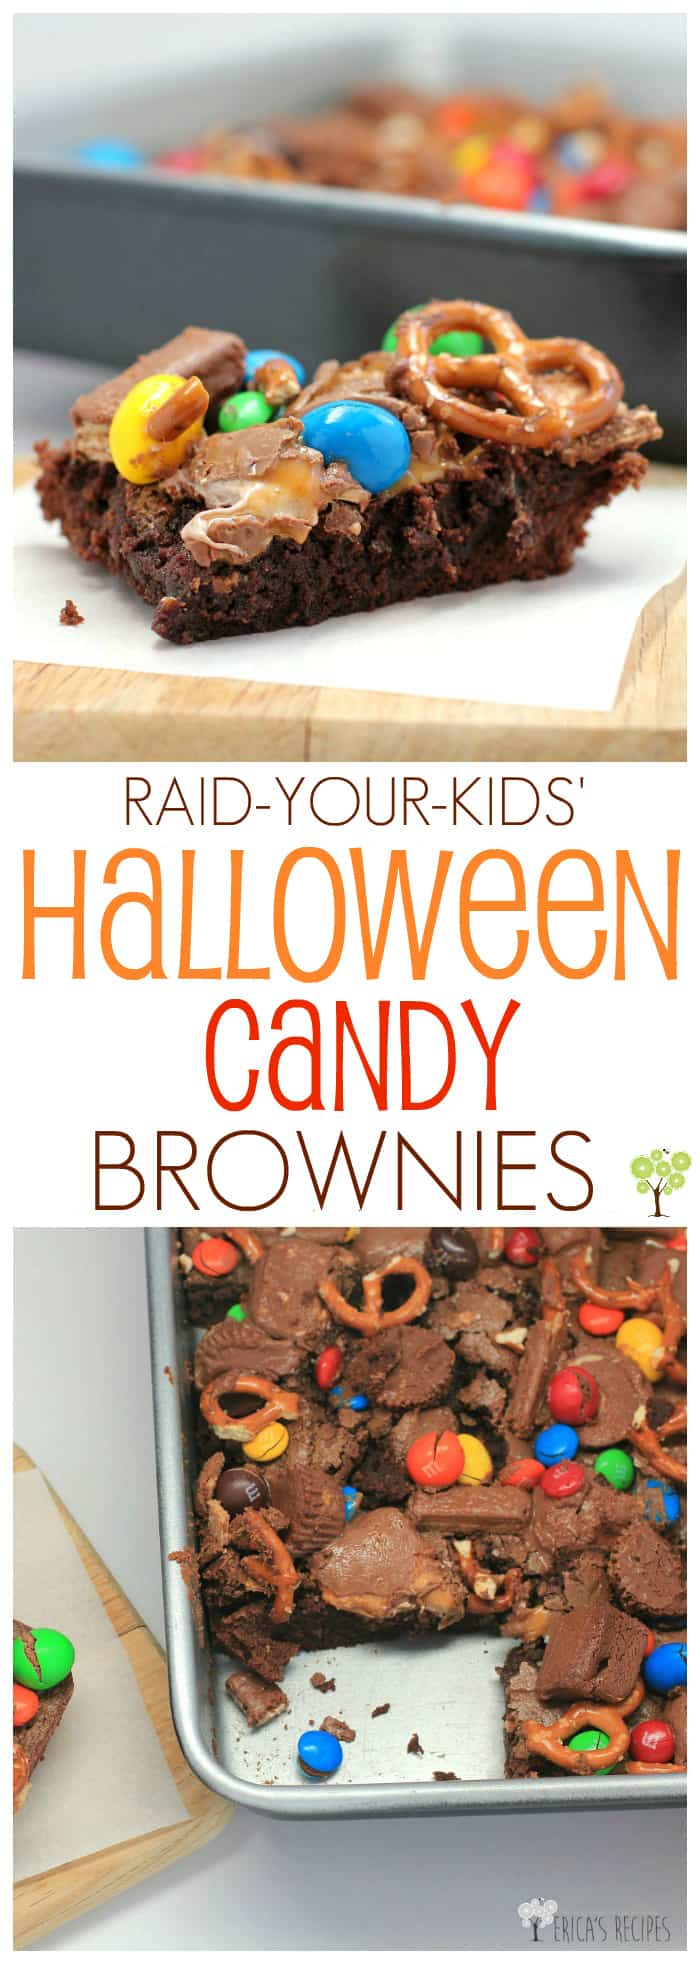 Raid-Your-Kids' Halloween Candy Brownies #recipe #halloween #candy #brownies #food